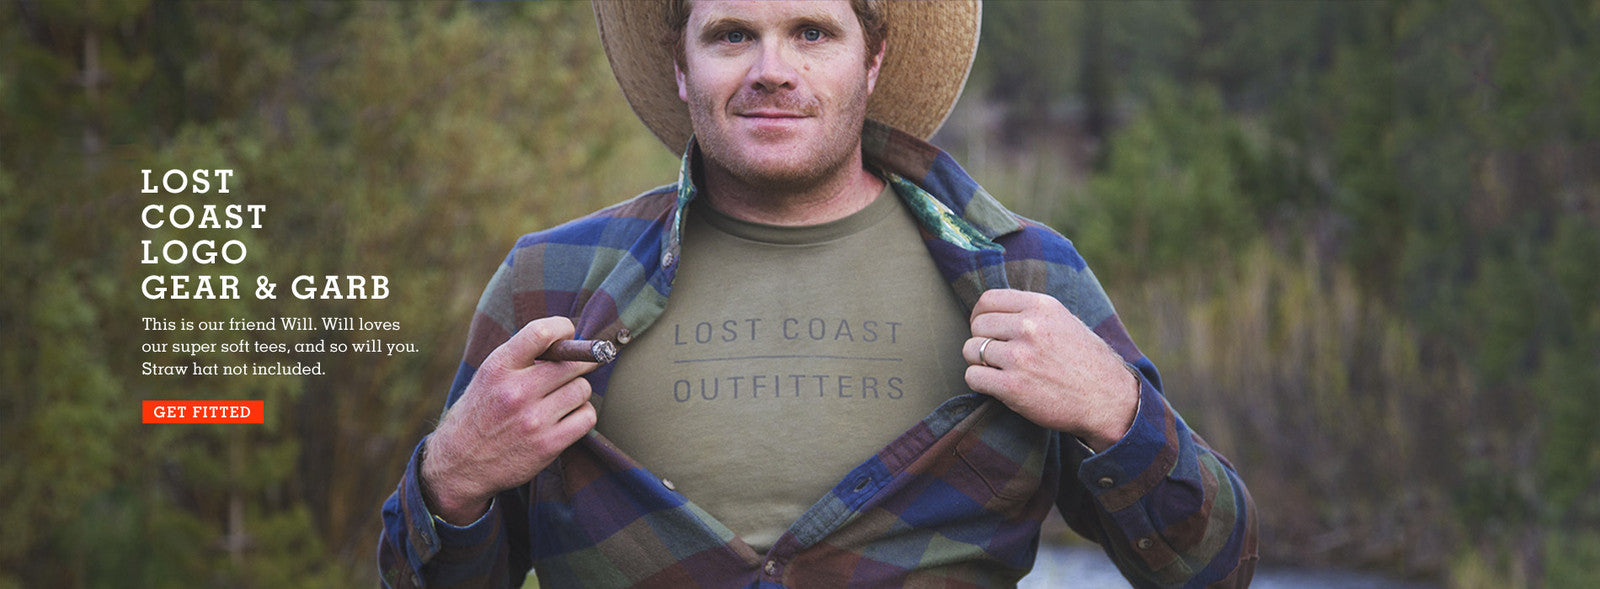 Lost Coast Outfitters Apparel